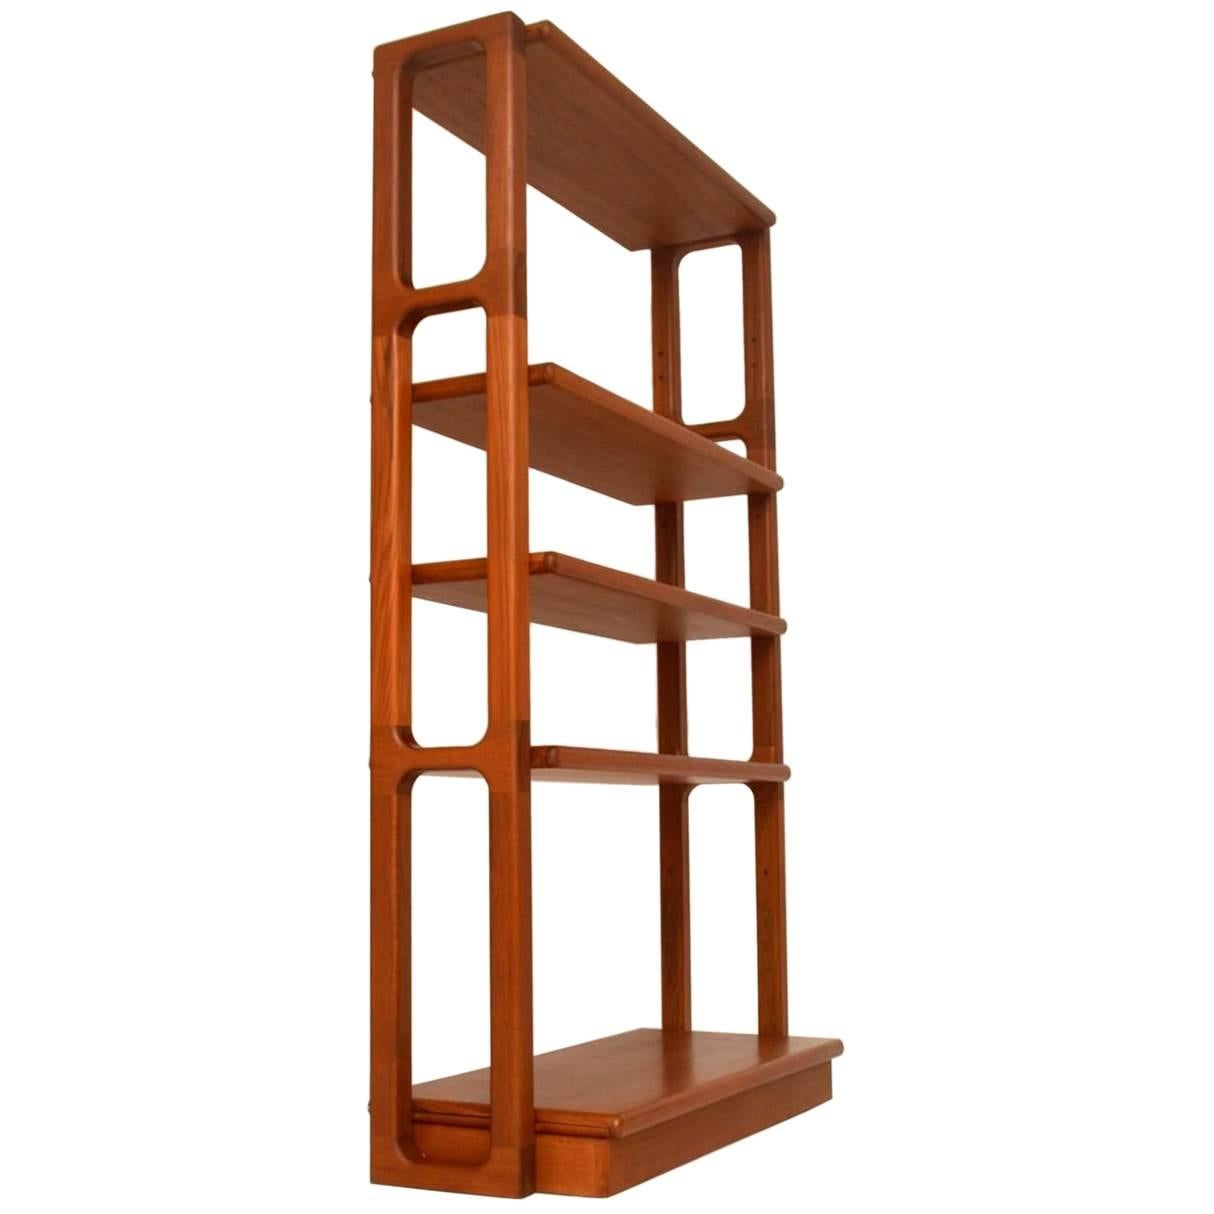 Vintage Bookcase 1960s Danish Teak Vintage Bookcase Or Room Divider